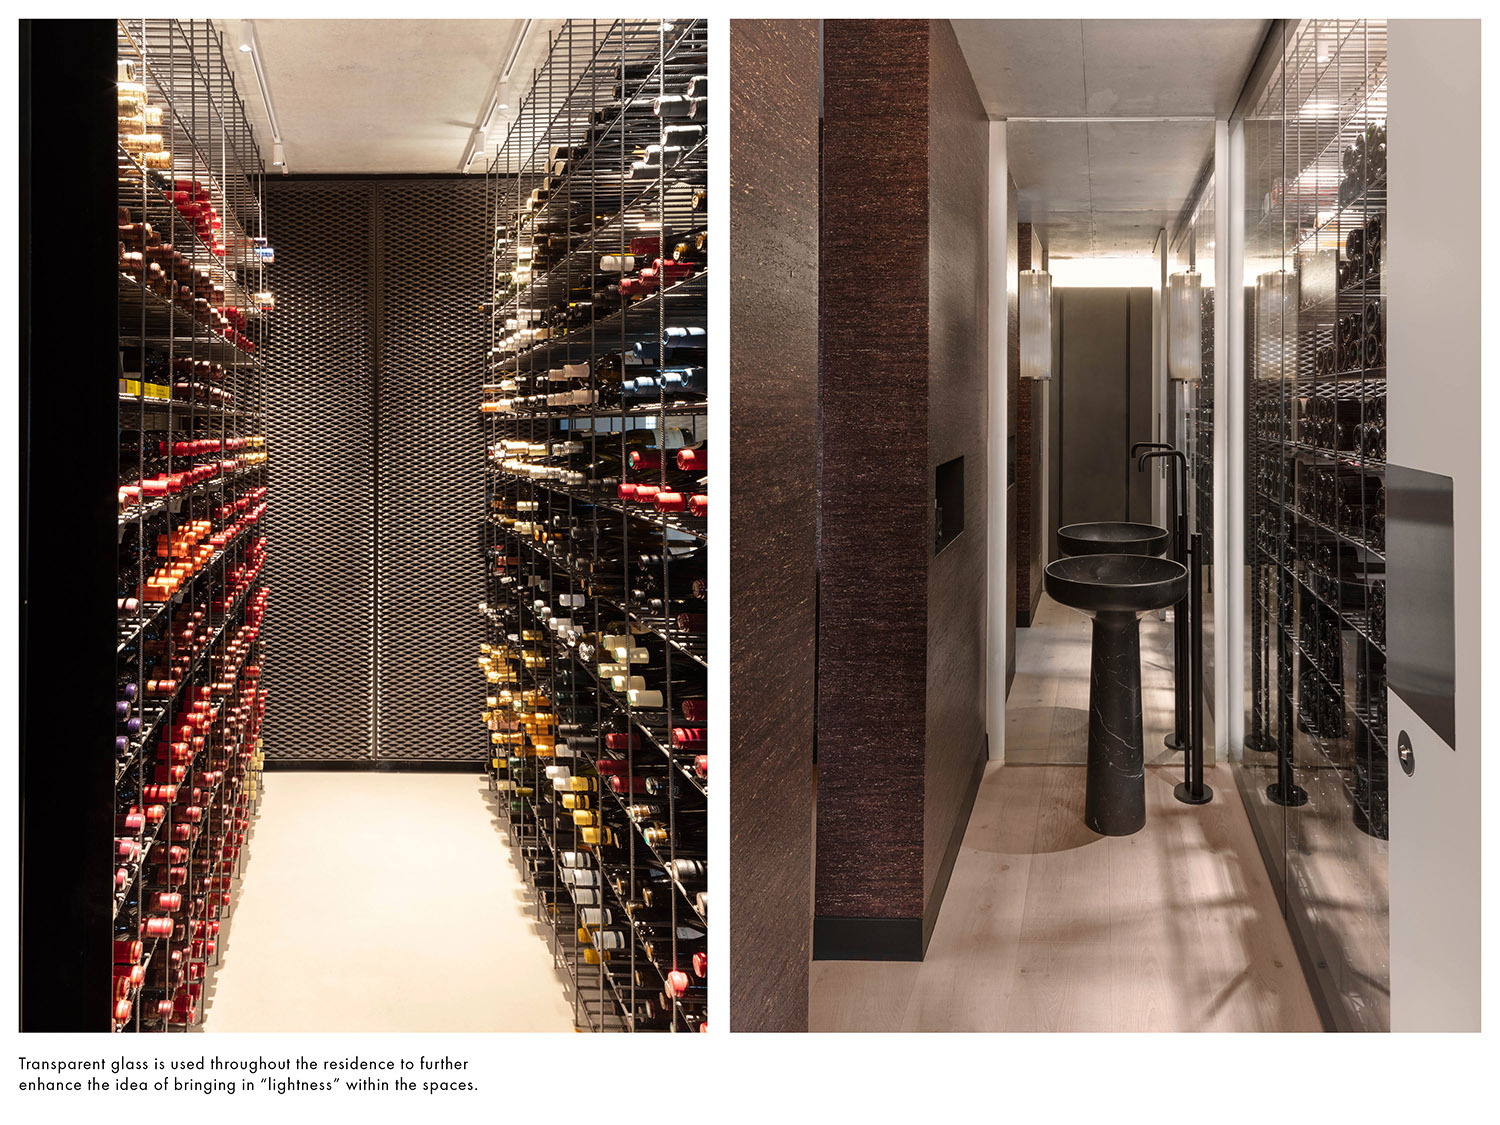 """Transparent glass is used throughout the residence to further enhance the idea of bringing in """"lightness"""" within the spaces. Delphine Burtin}"""